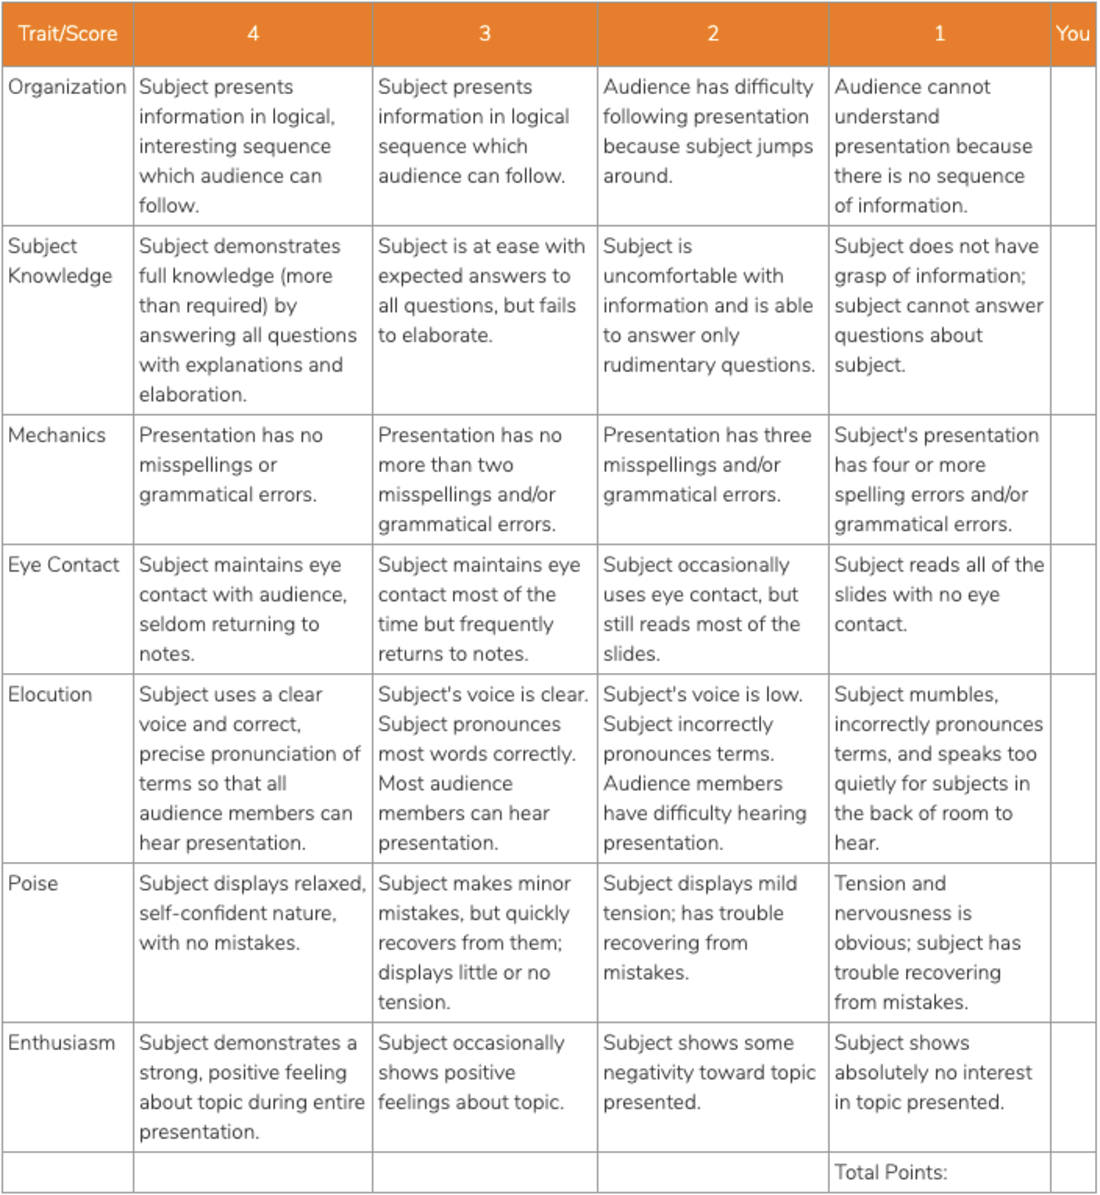 Image contains the presentation rubric